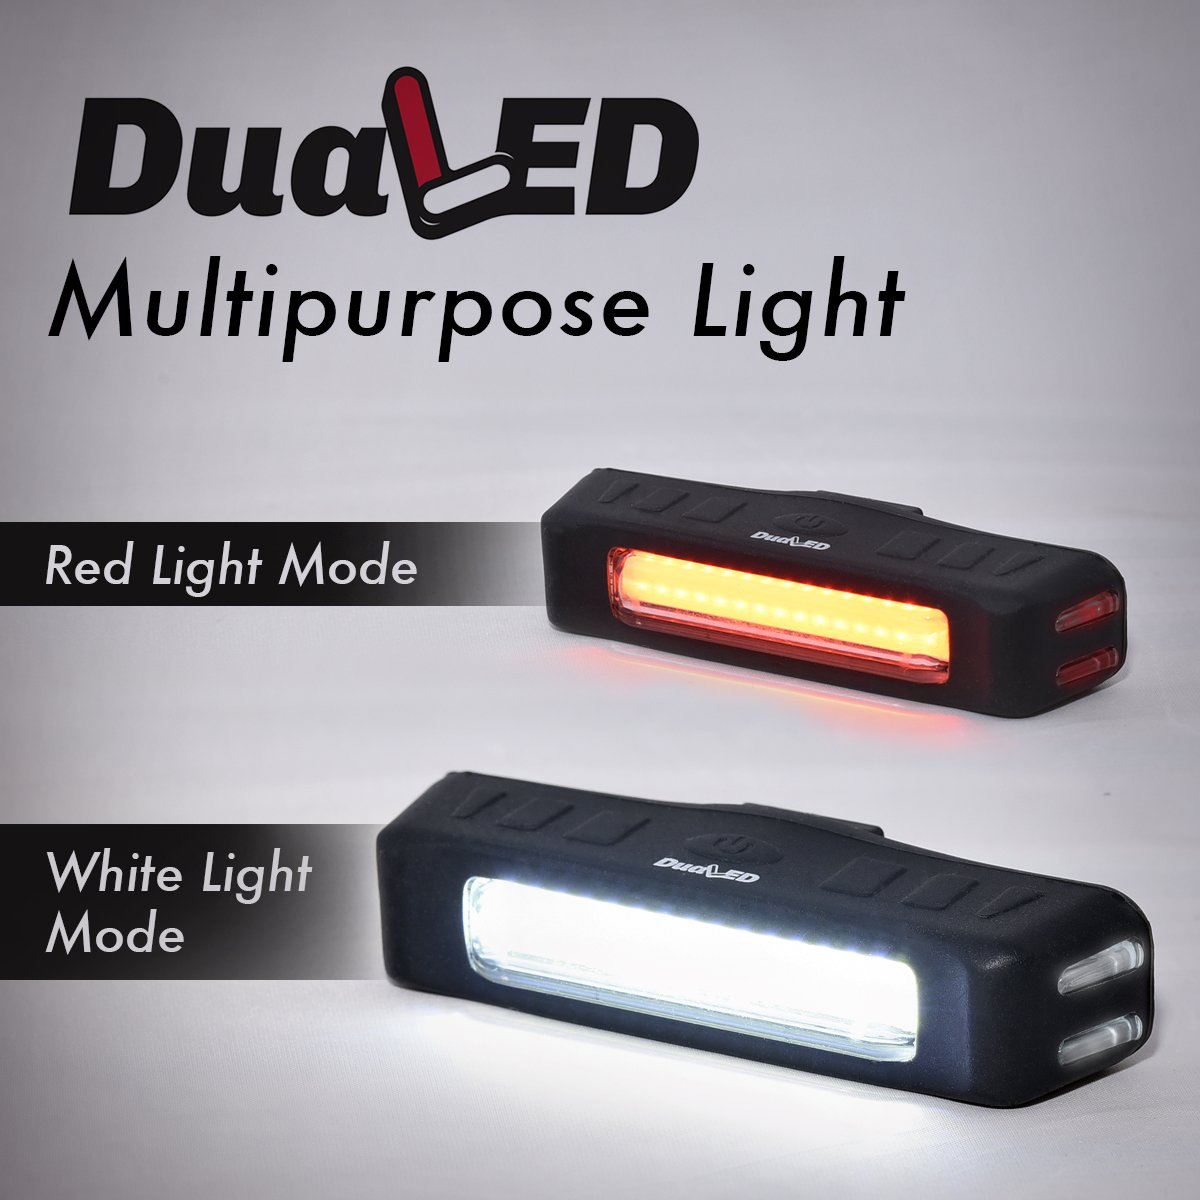 Usb Rechargeable Bike Light Red Or White Led Glow Jumbo Flashing Lights Flash 5 Modes All In One Torch Flashlight Super Bright Taillight Headlight For Cycling